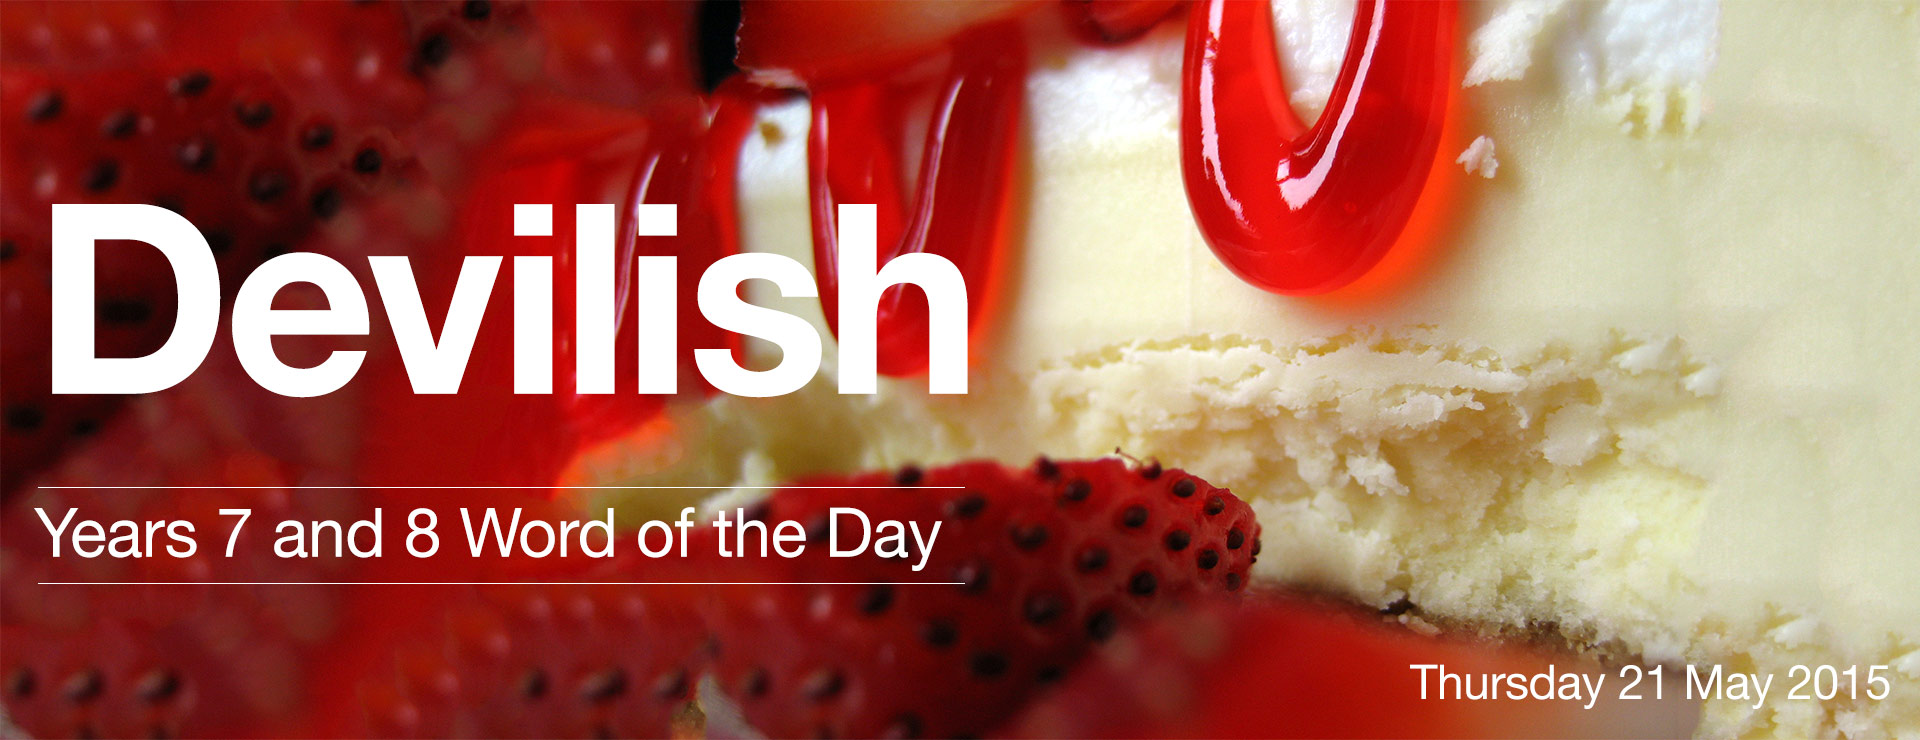 Word-of-the-Day-110.jpg